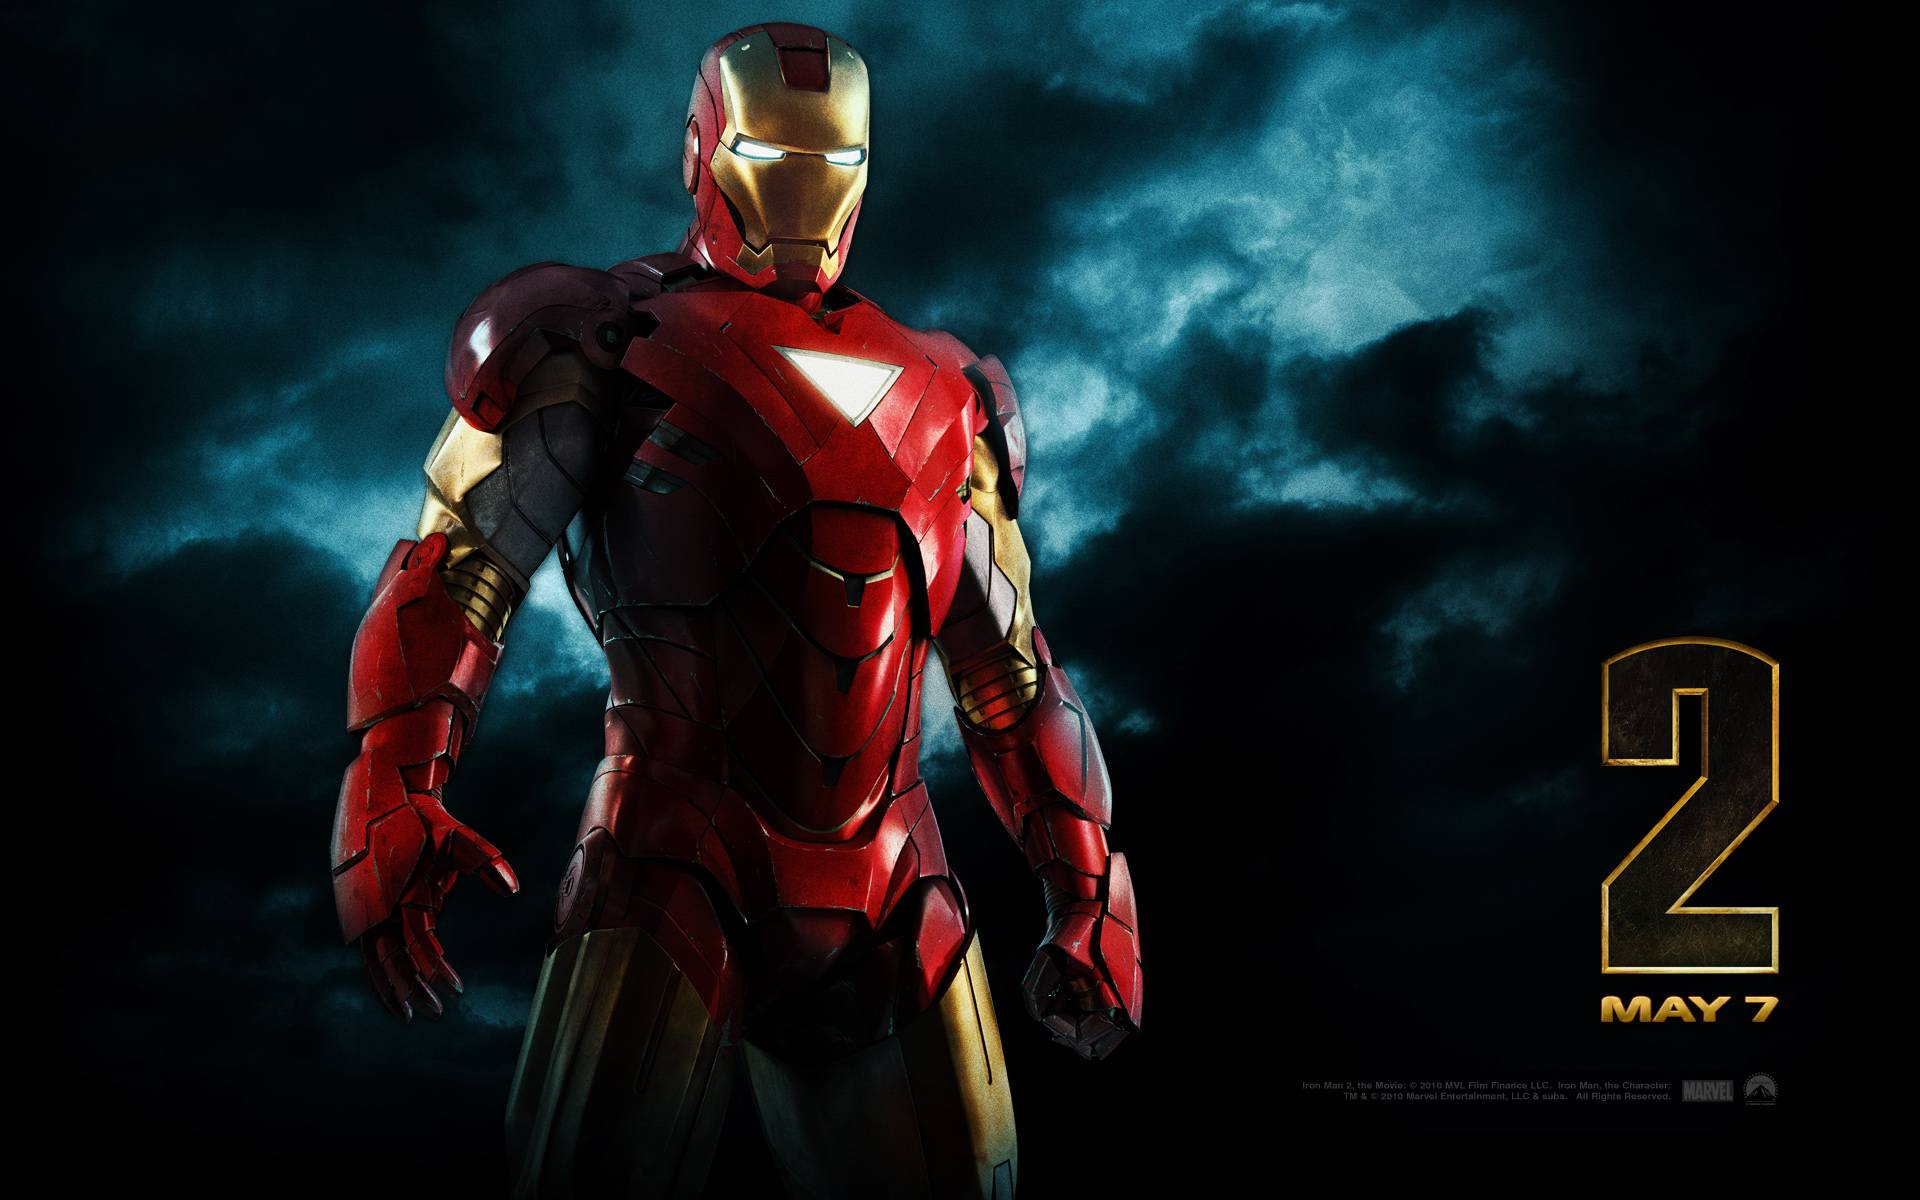 2010 Iron man 2 Wallpapers HD Wallpapers 1920x1200